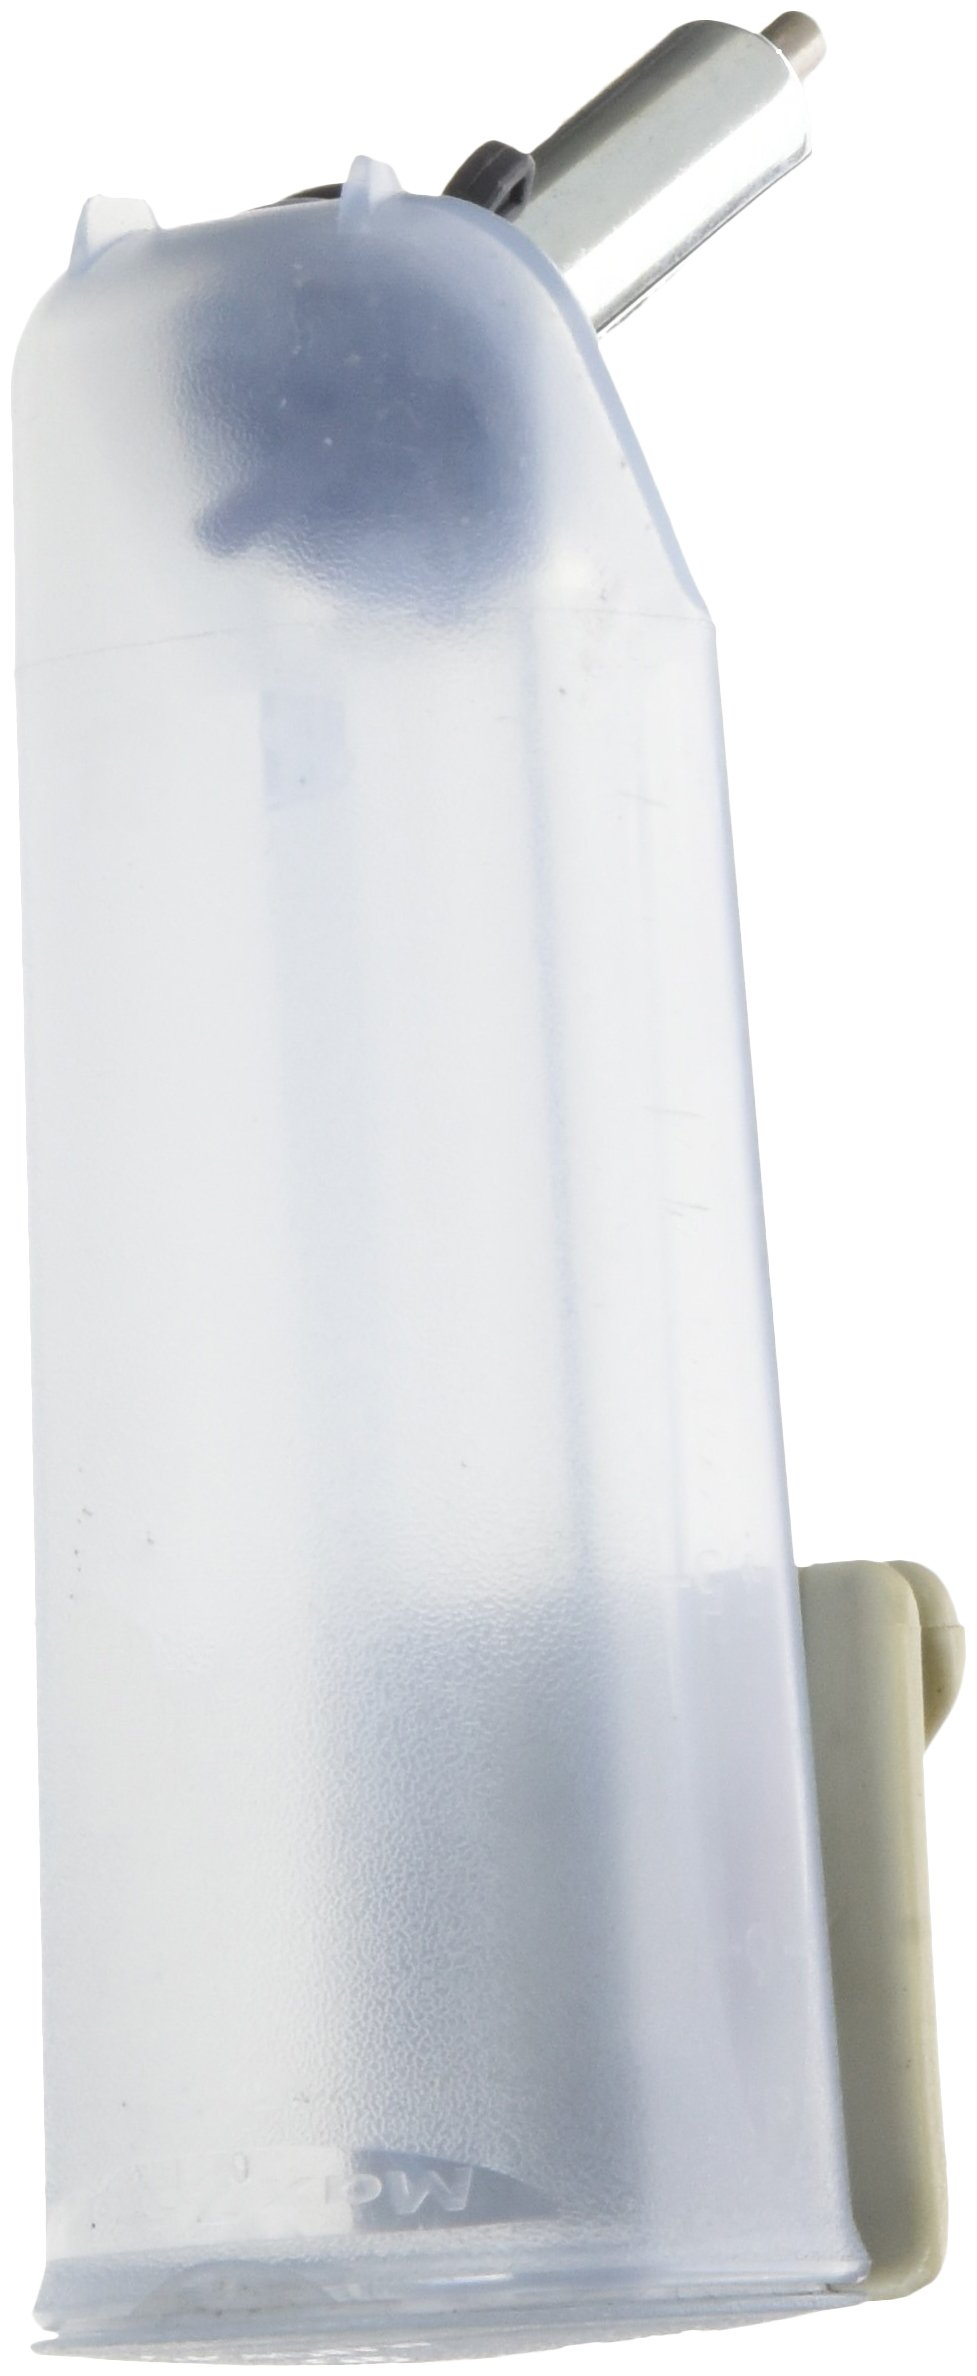 Marchioro Siwa 1 No Drip Water Bottle for Small Animals, 1.5 inches, Colors Vary